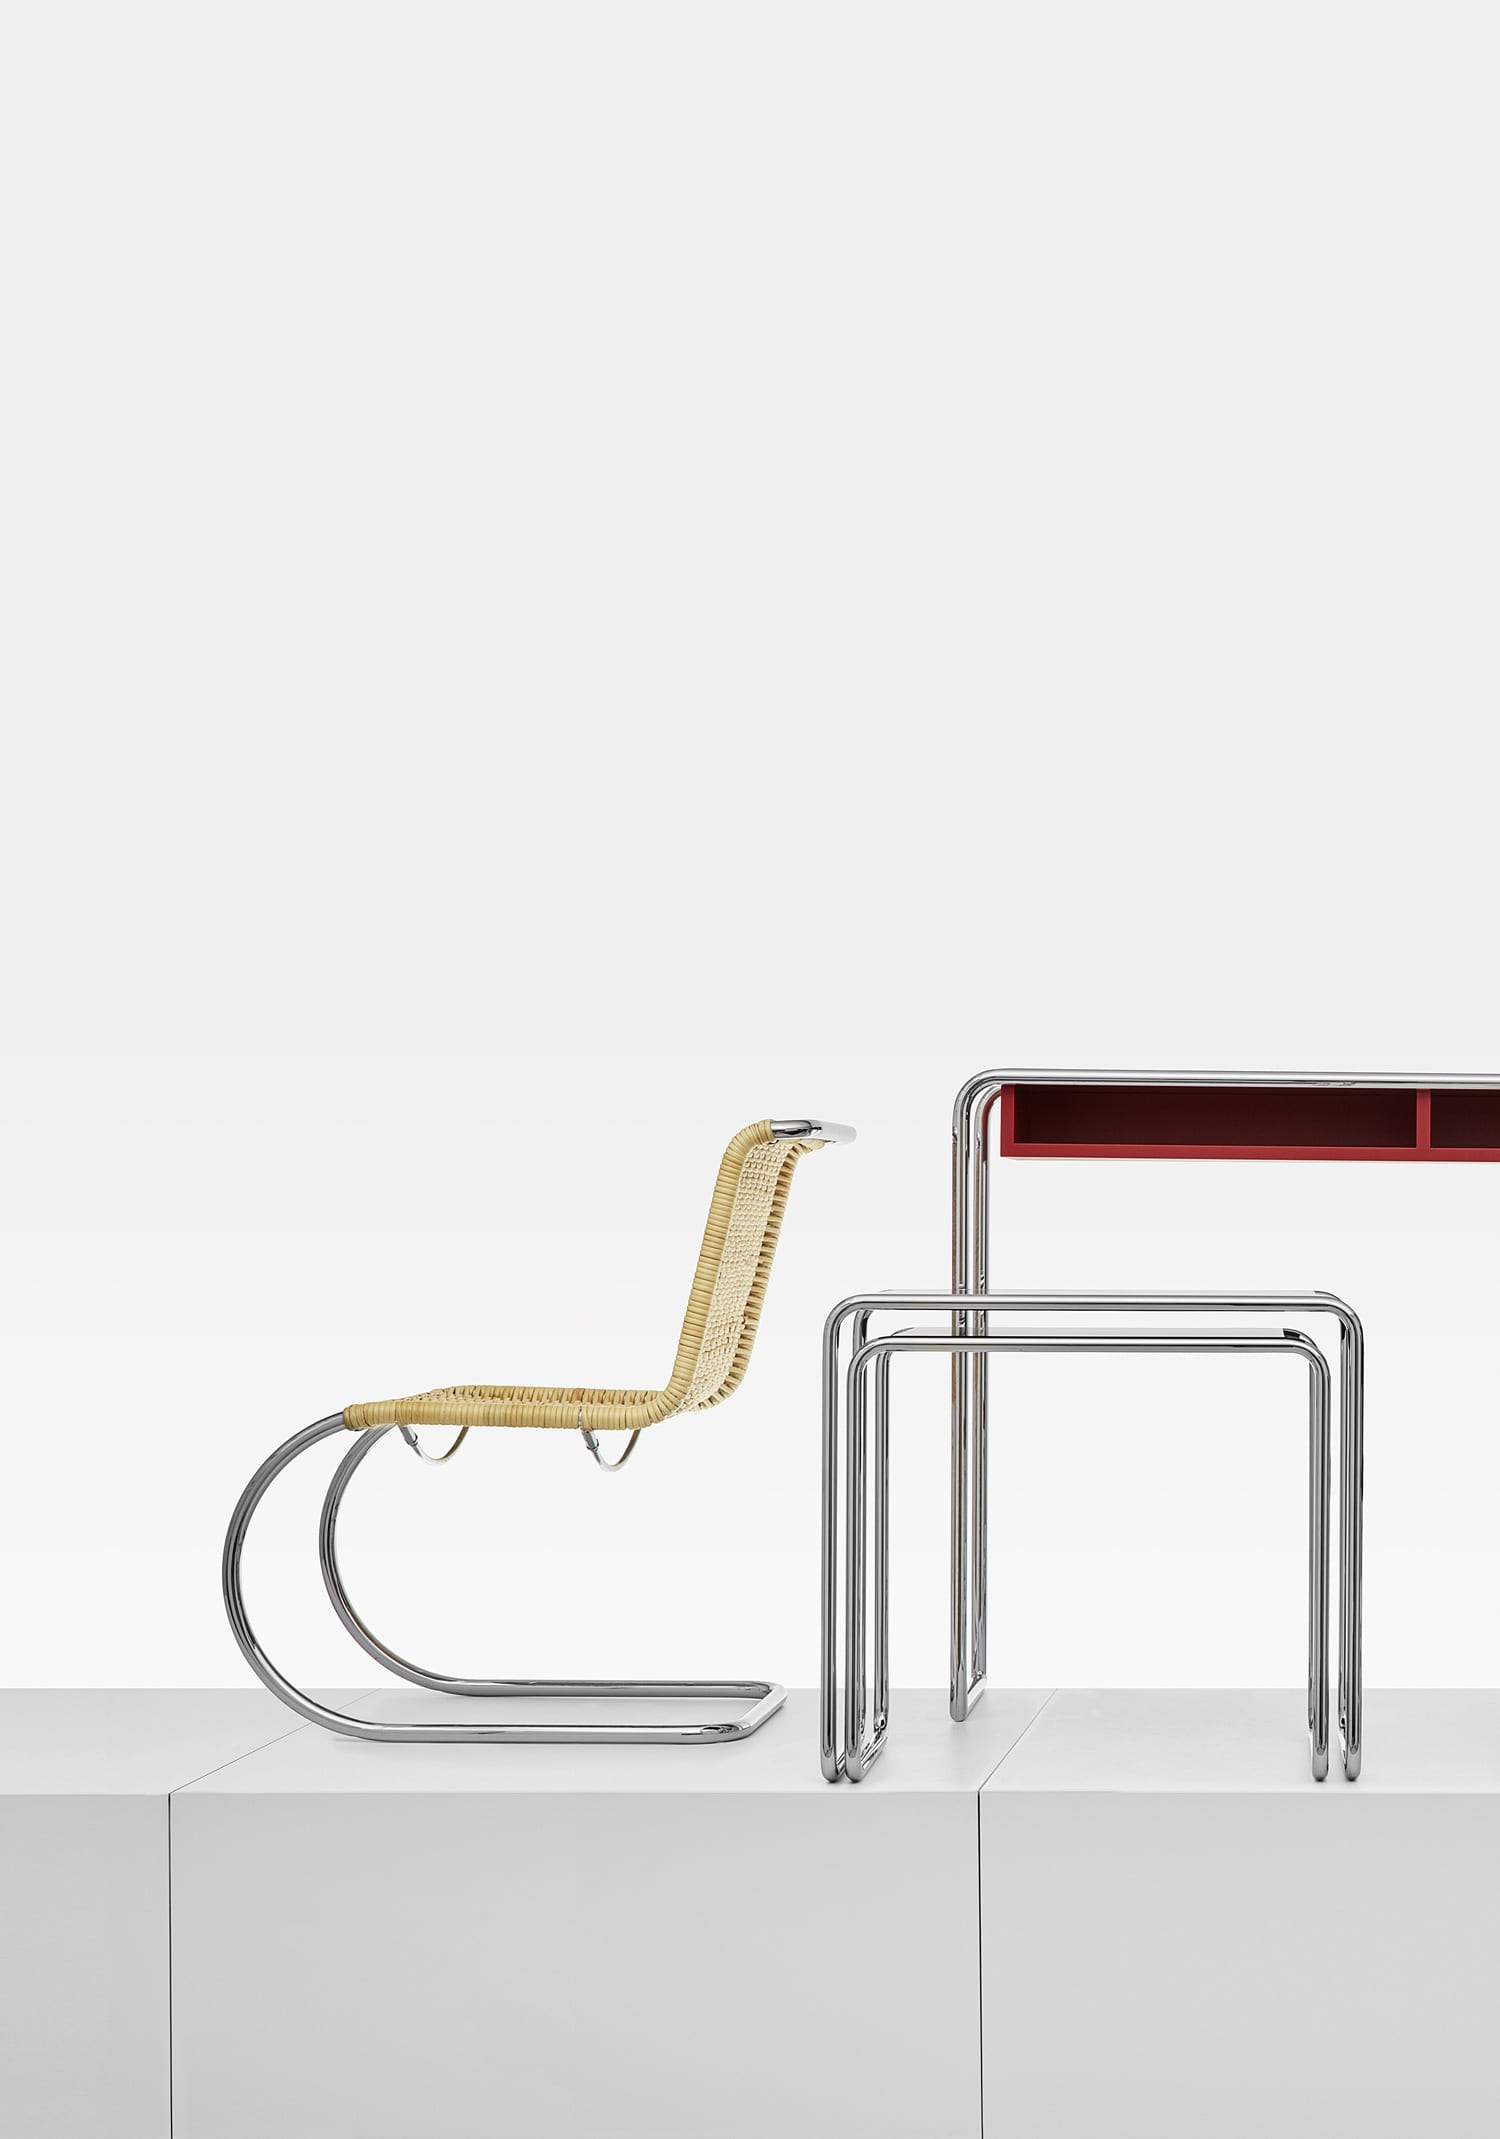 Tubular Steel Classics Ensemble by Thonet at IMM Cologne 2018 | Yellowtrace